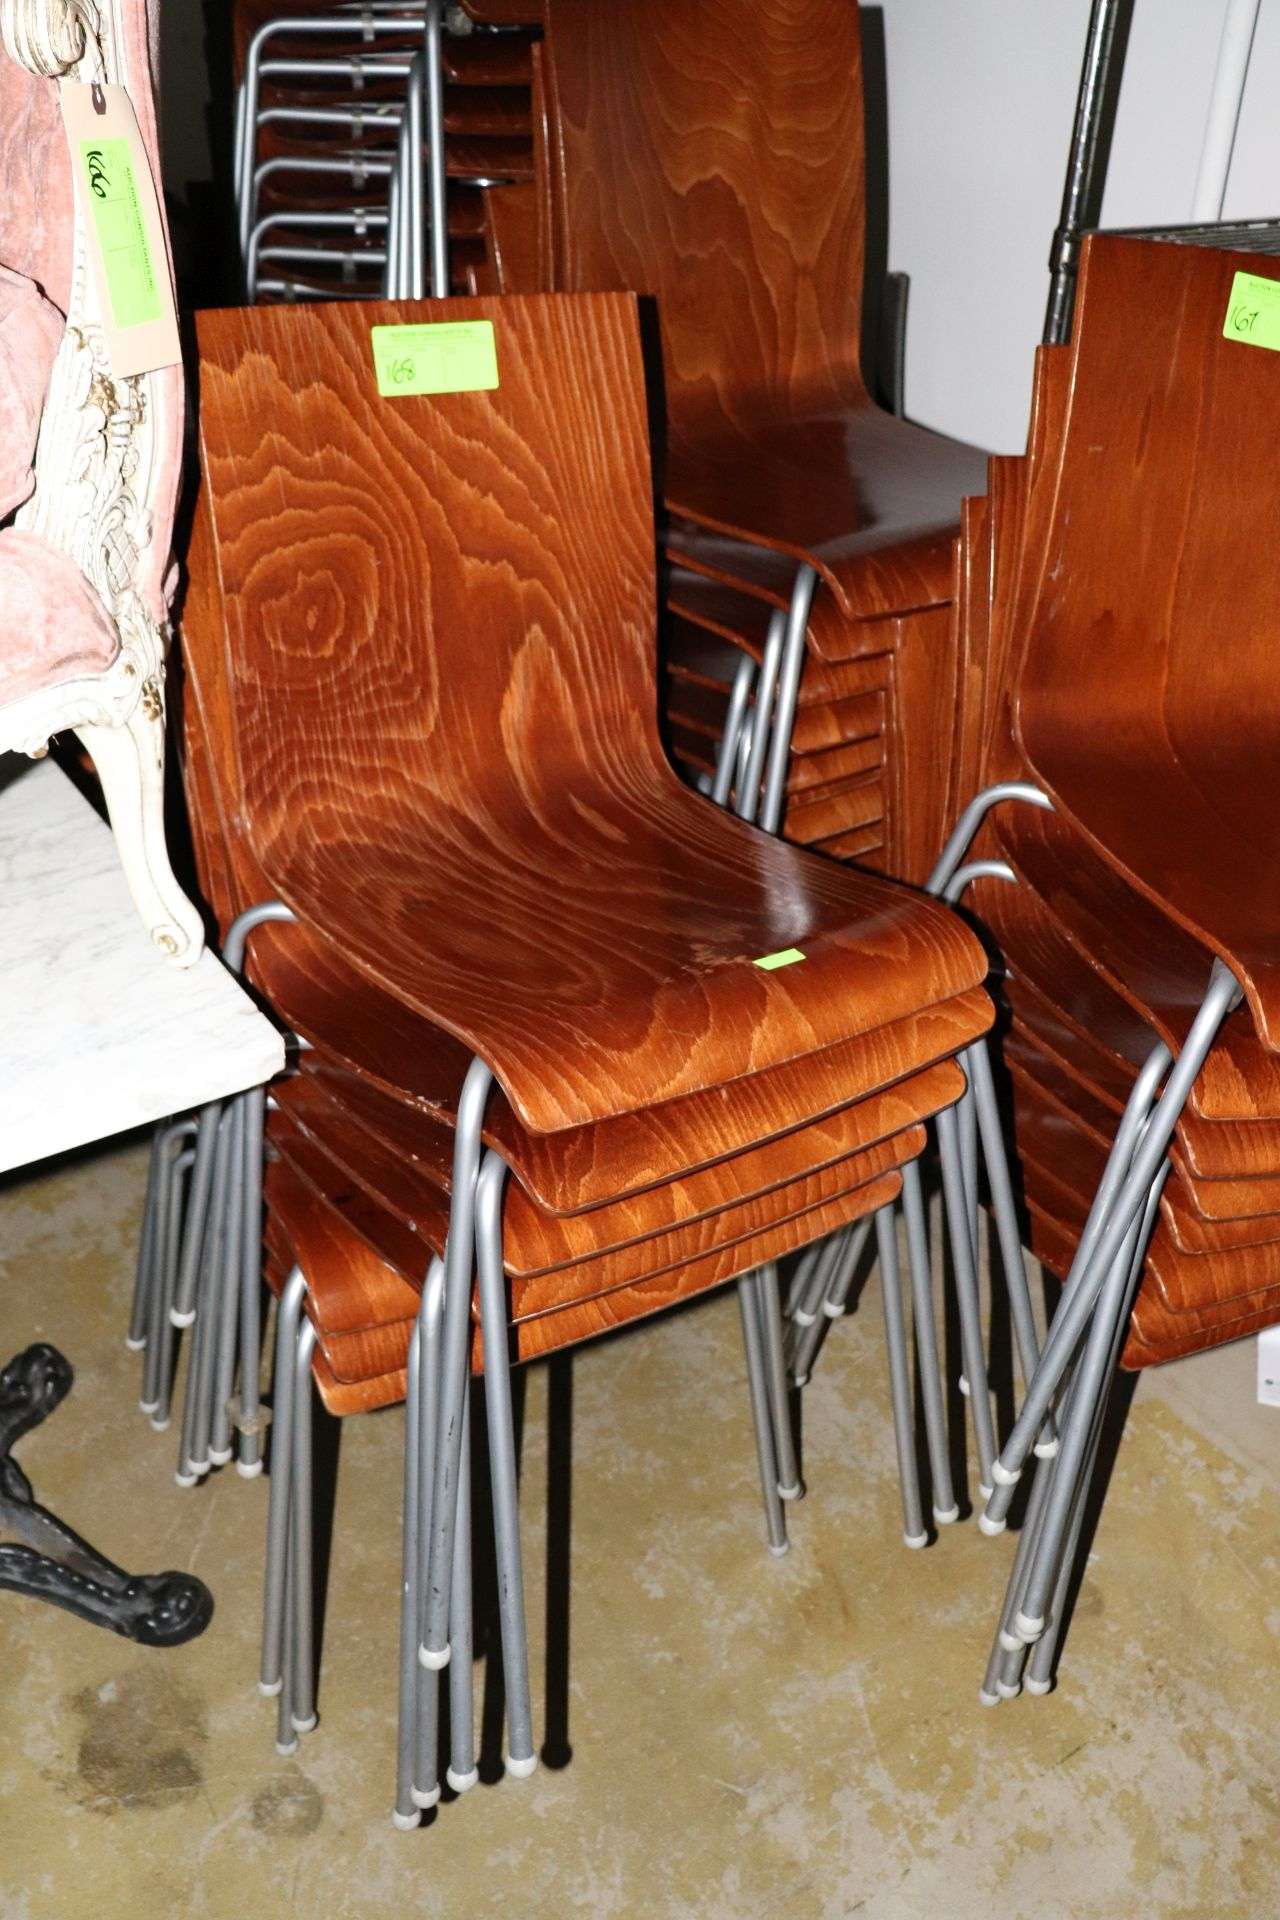 Lot 170 - Choice of 8 Chairs, First come first pick